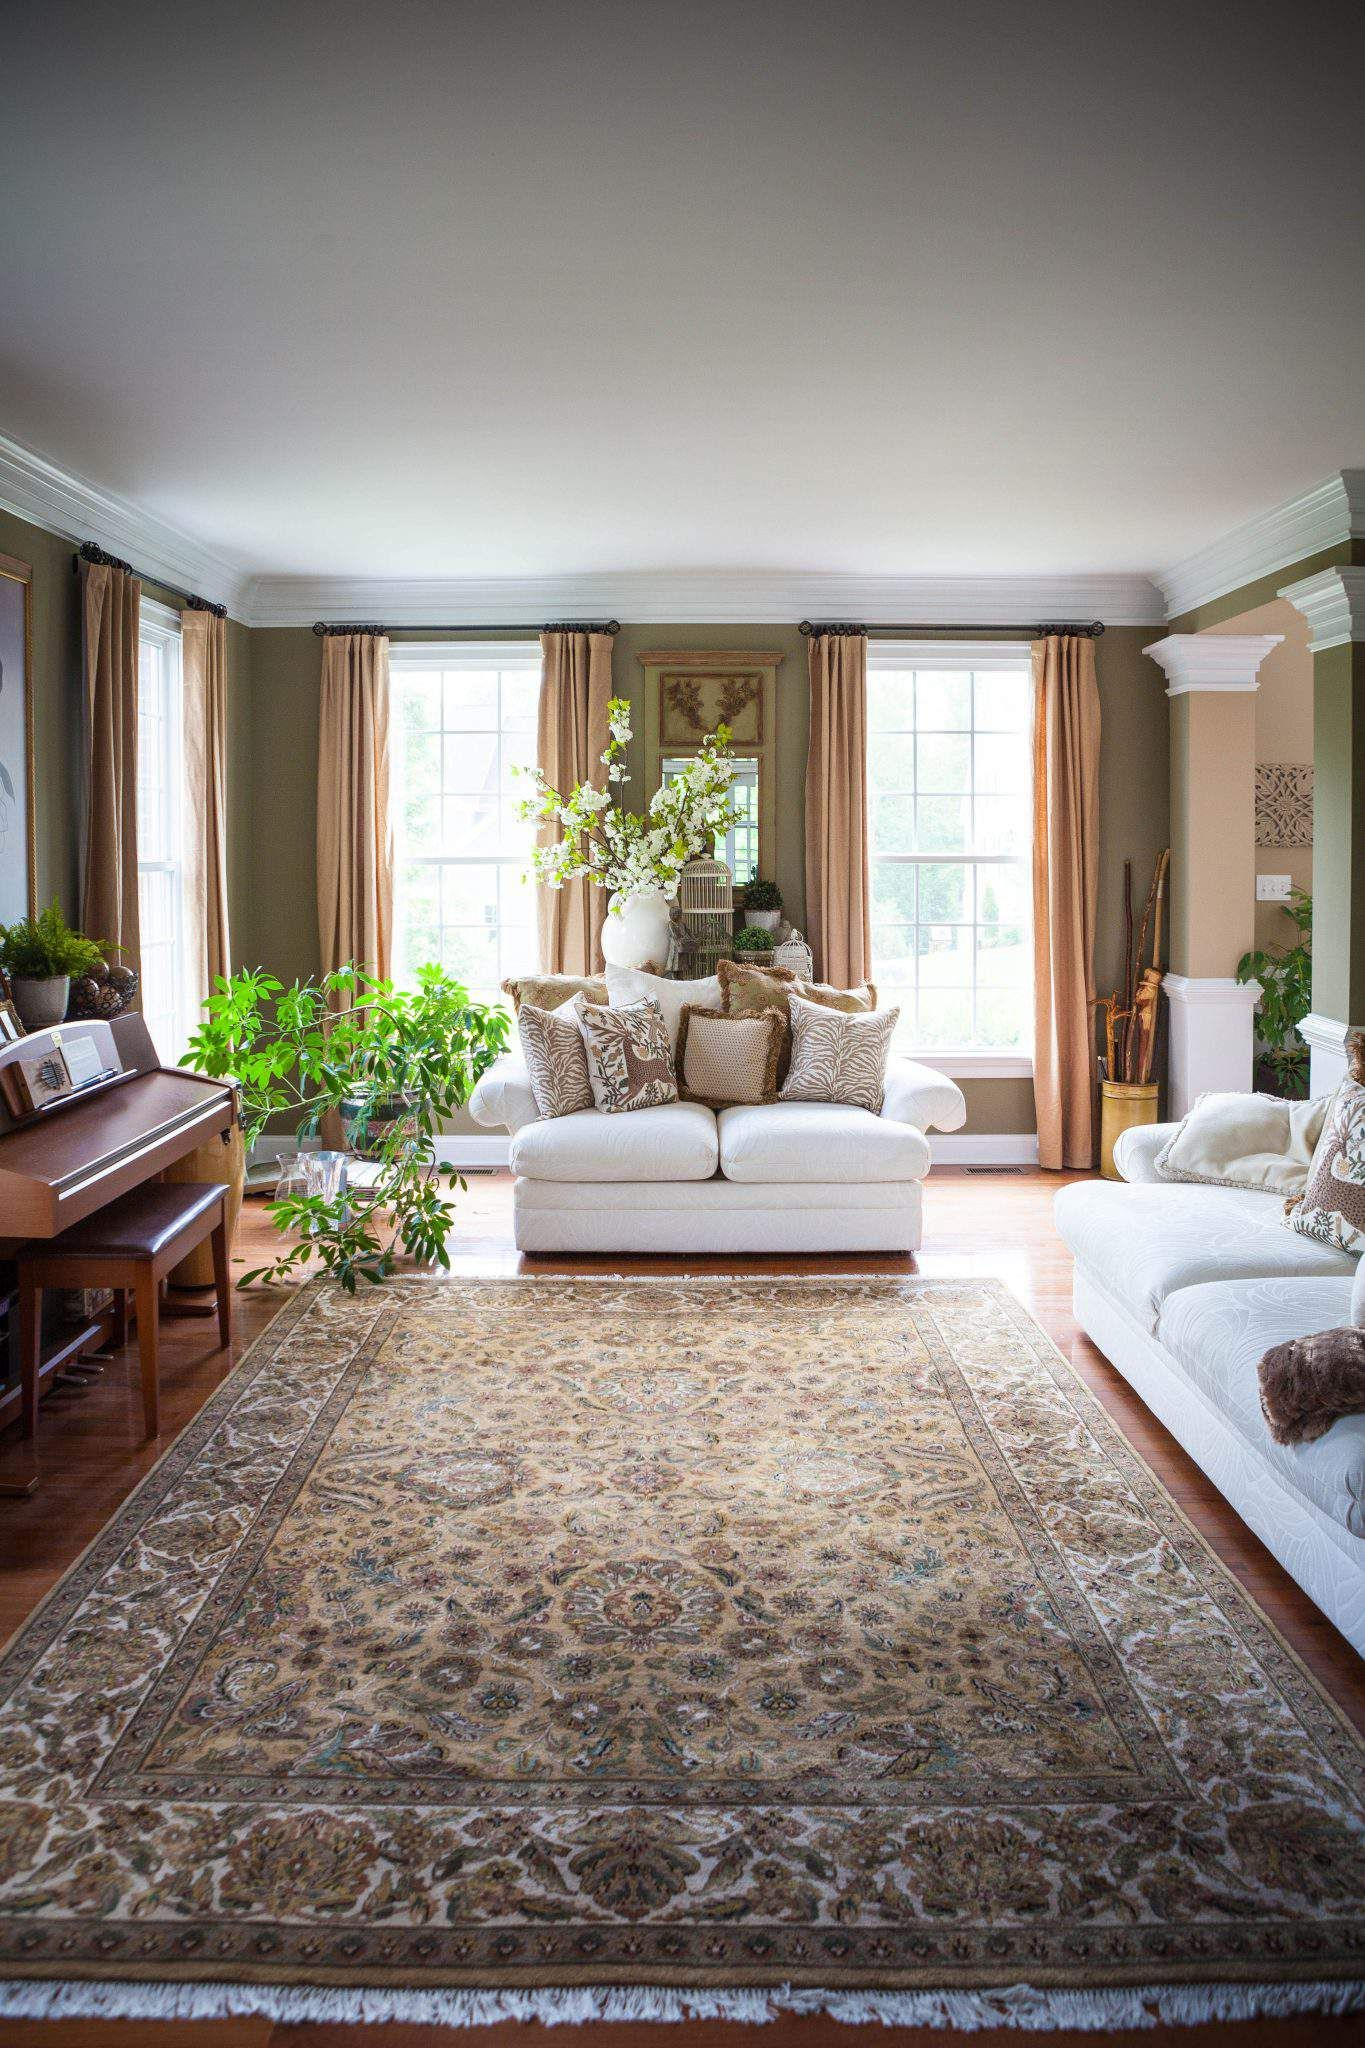 Redecorate My Living Room: Room, Redecorating, Home Decor